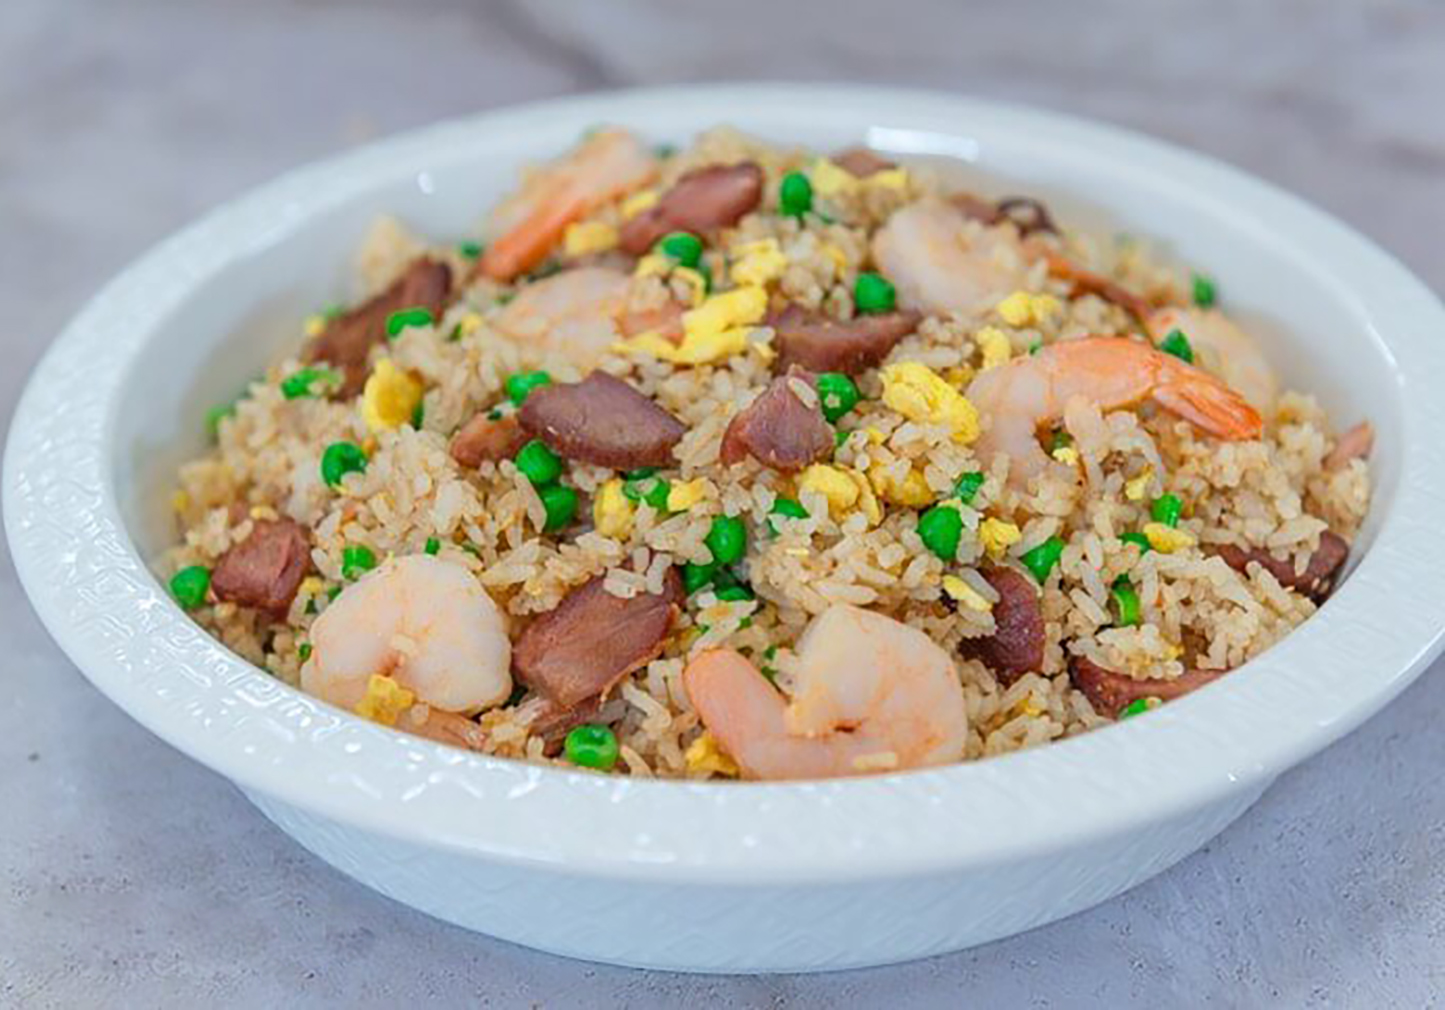 yang-chow-fried-rice.jpg